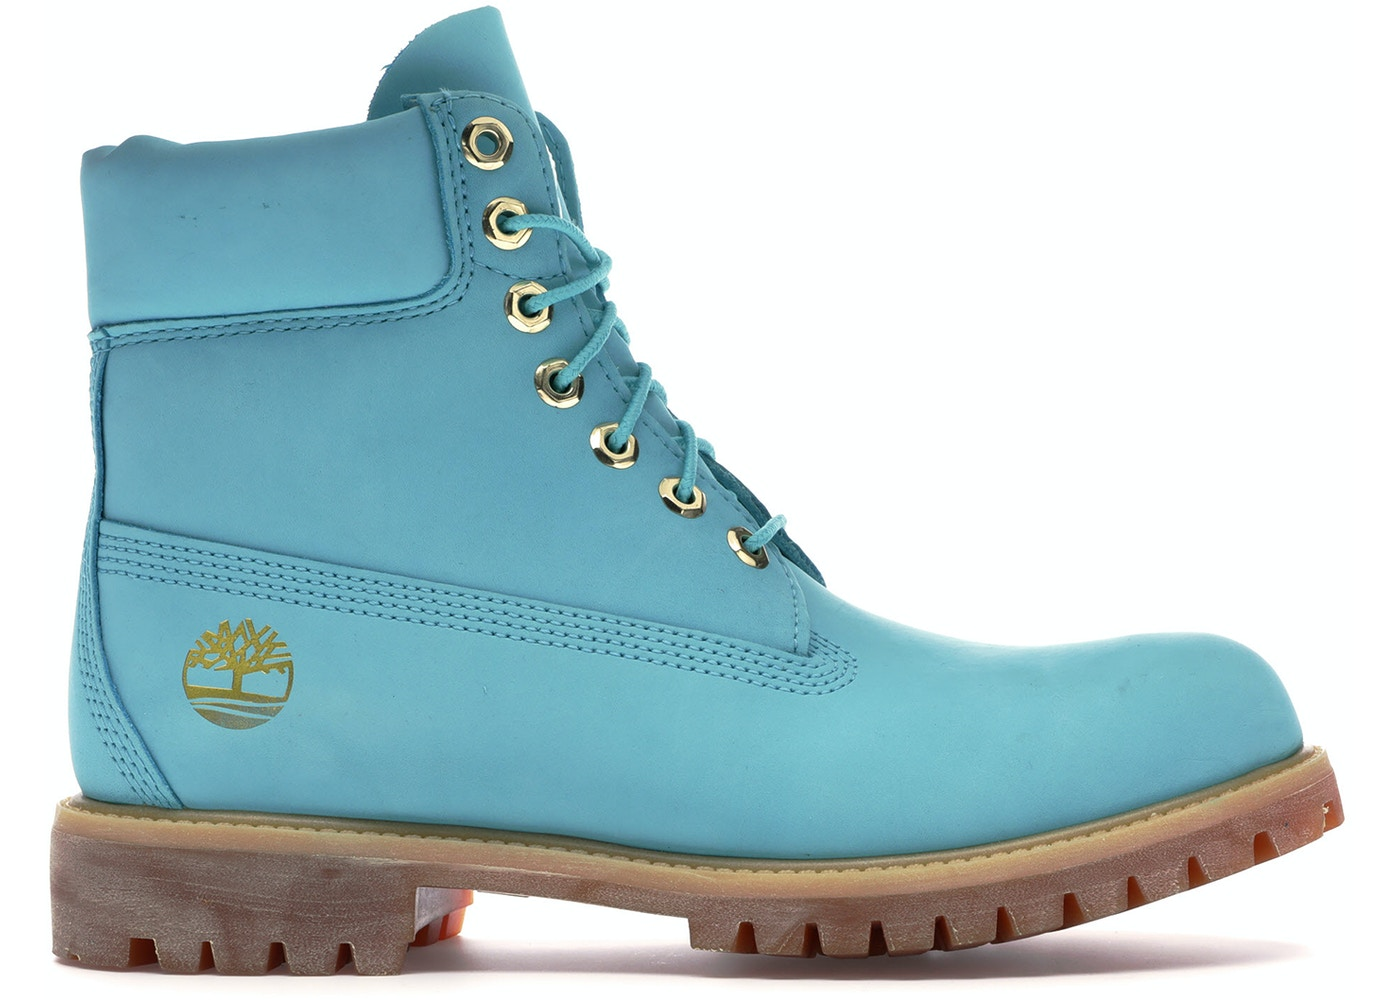 fcfa336824ce0e Other Size 12 Shoes - New Lowest Asks